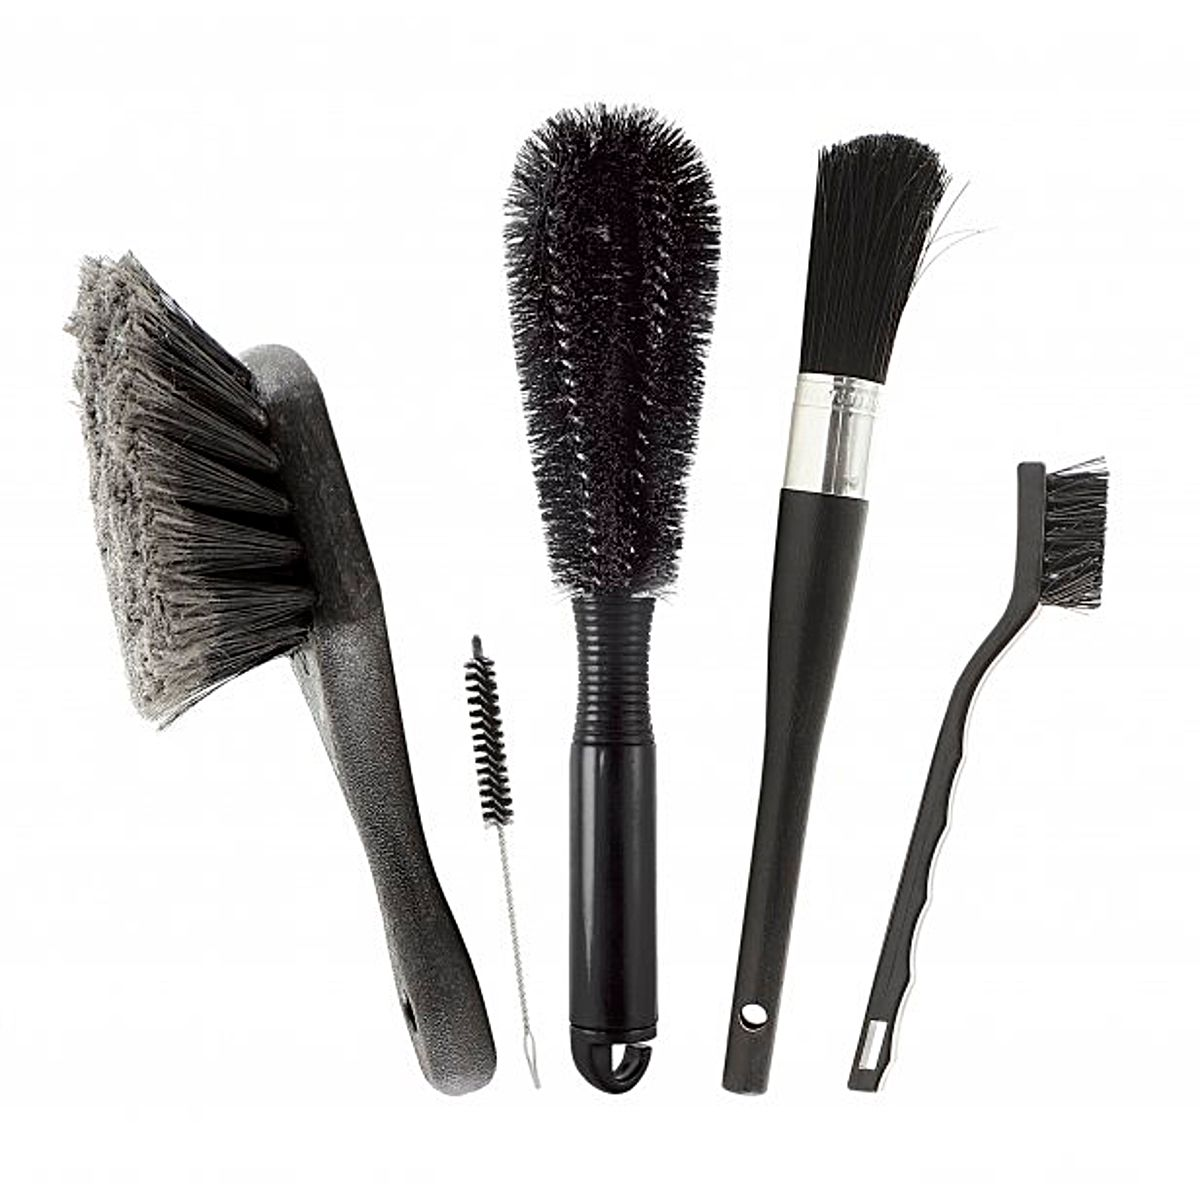 Easy Pro brush set